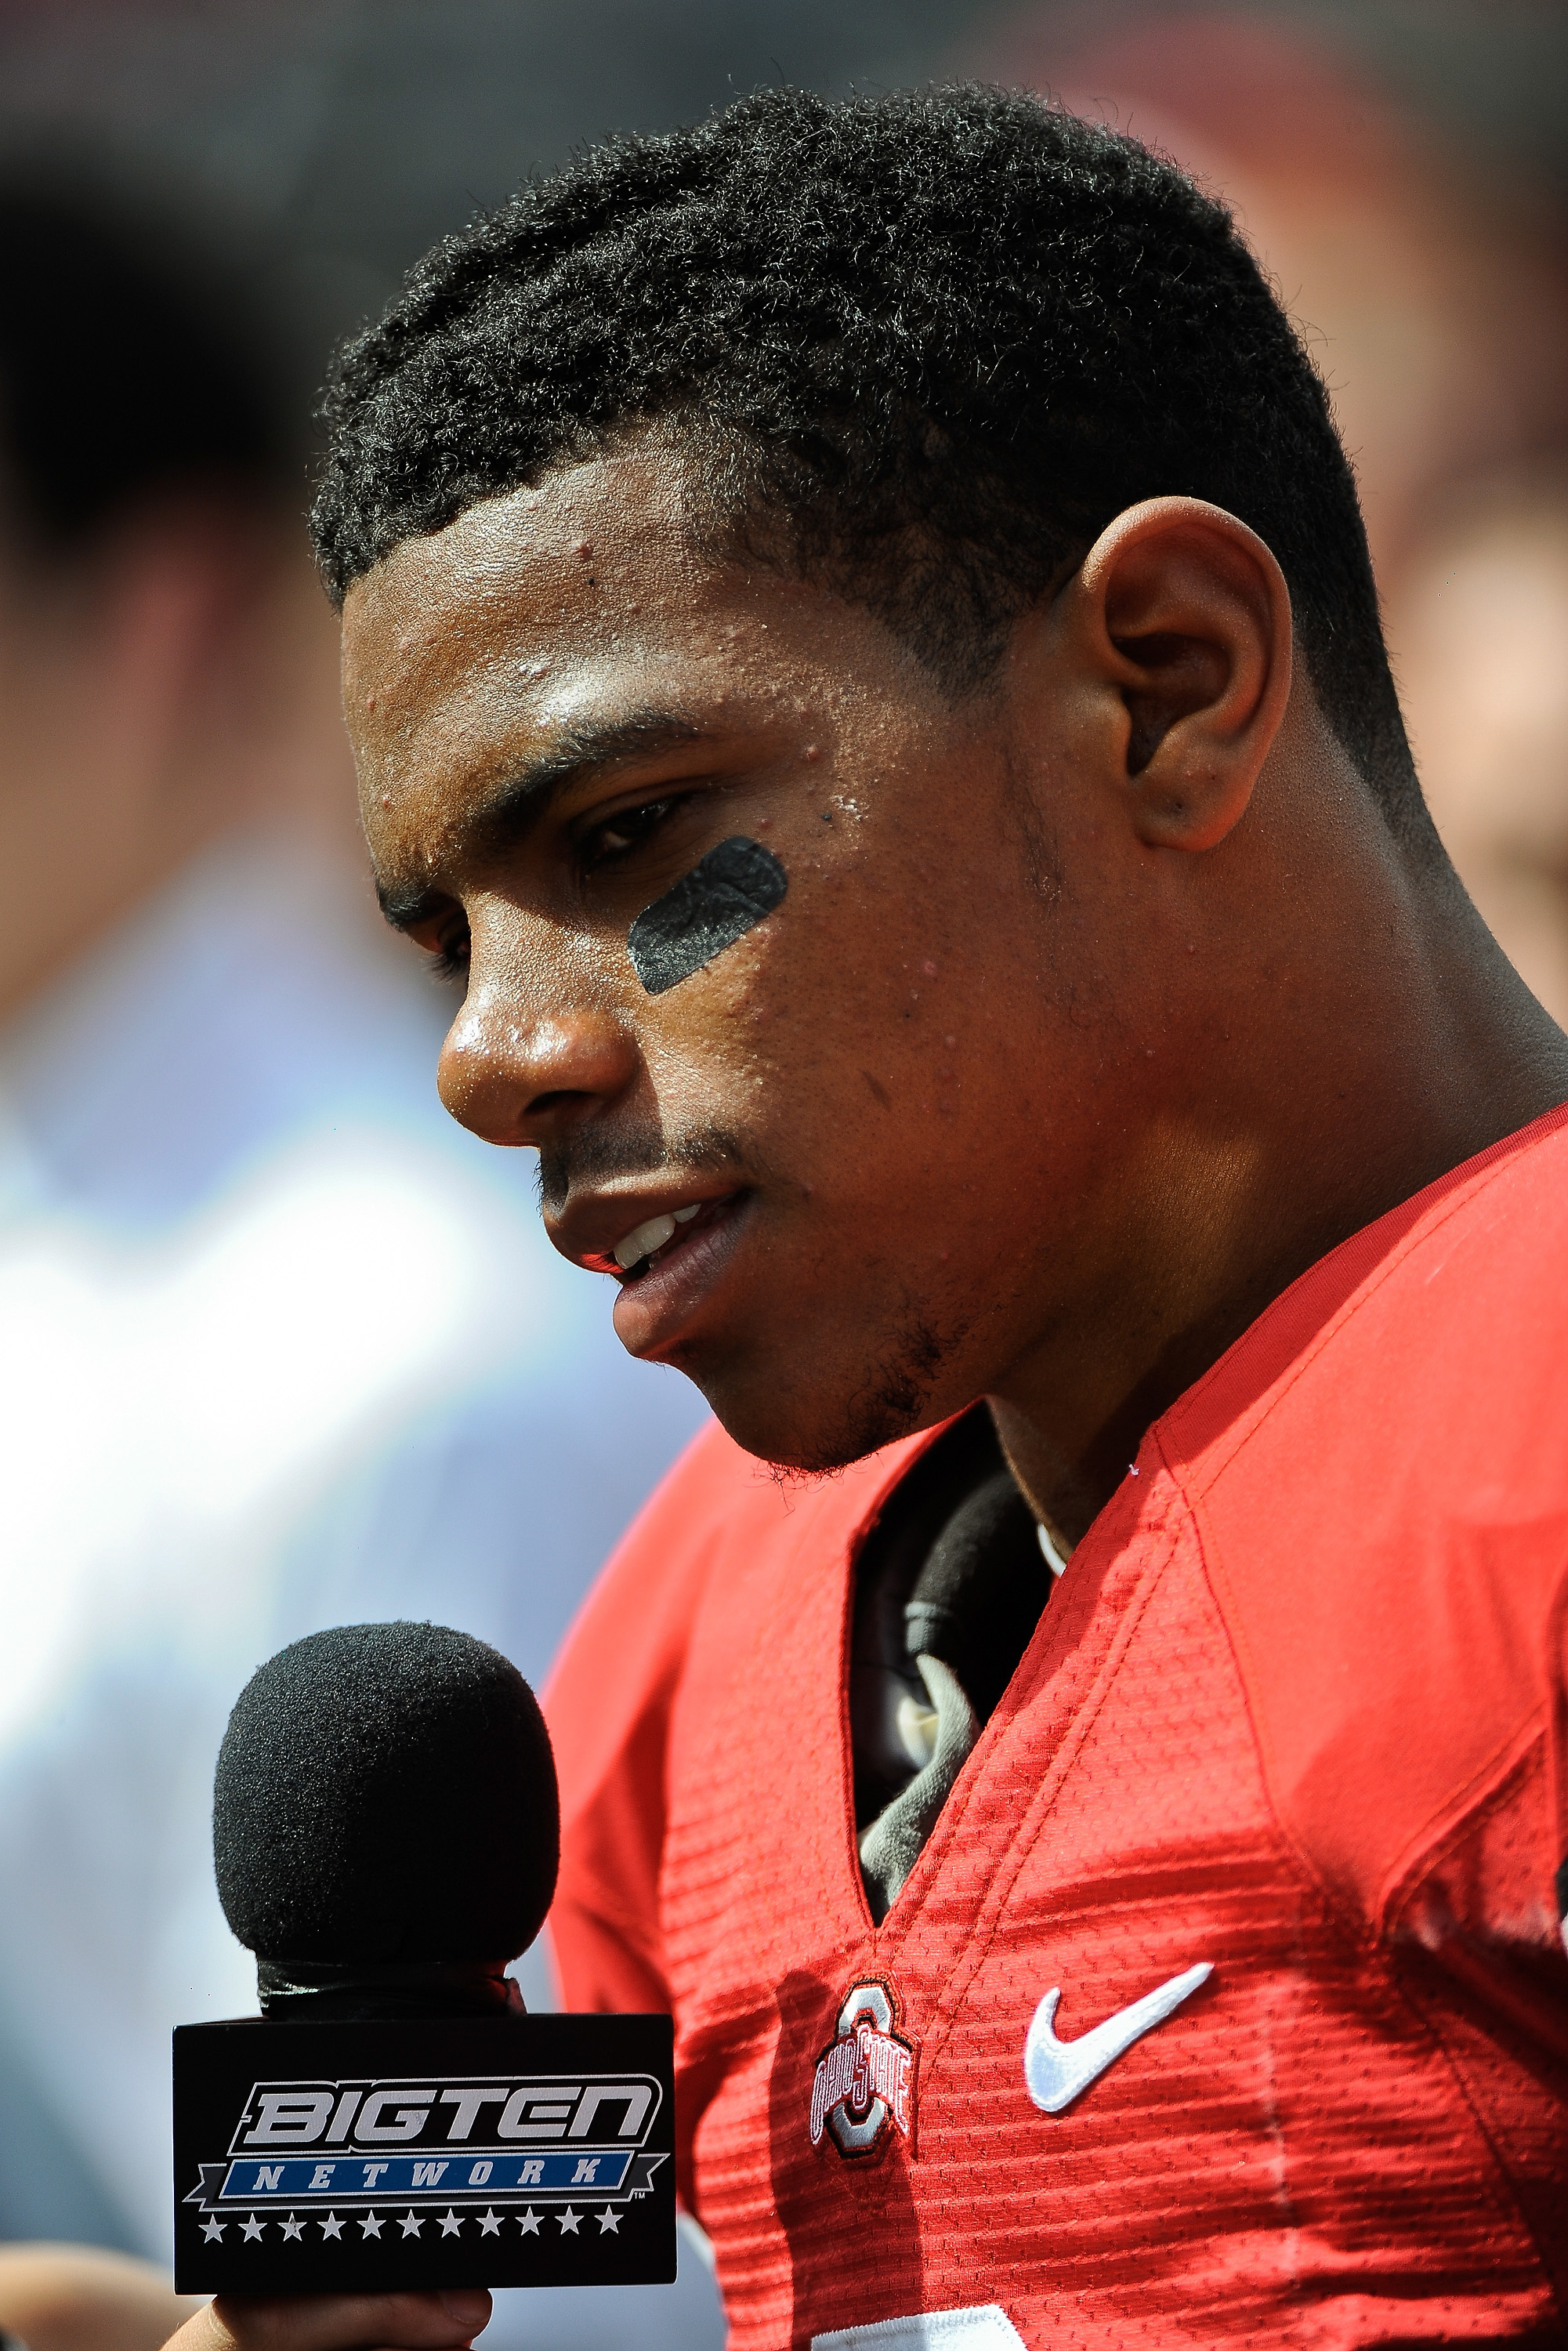 COLUMBUS, OH - SEPTEMBER 18:  Terrelle Pryor #2 of the Ohio State Buckeyes gives a television interview after a game against the Ohio Bobcats at Ohio Stadium on September 18, 2010 in Columbus, Ohio.  (Photo by Jamie Sabau/Getty Images)